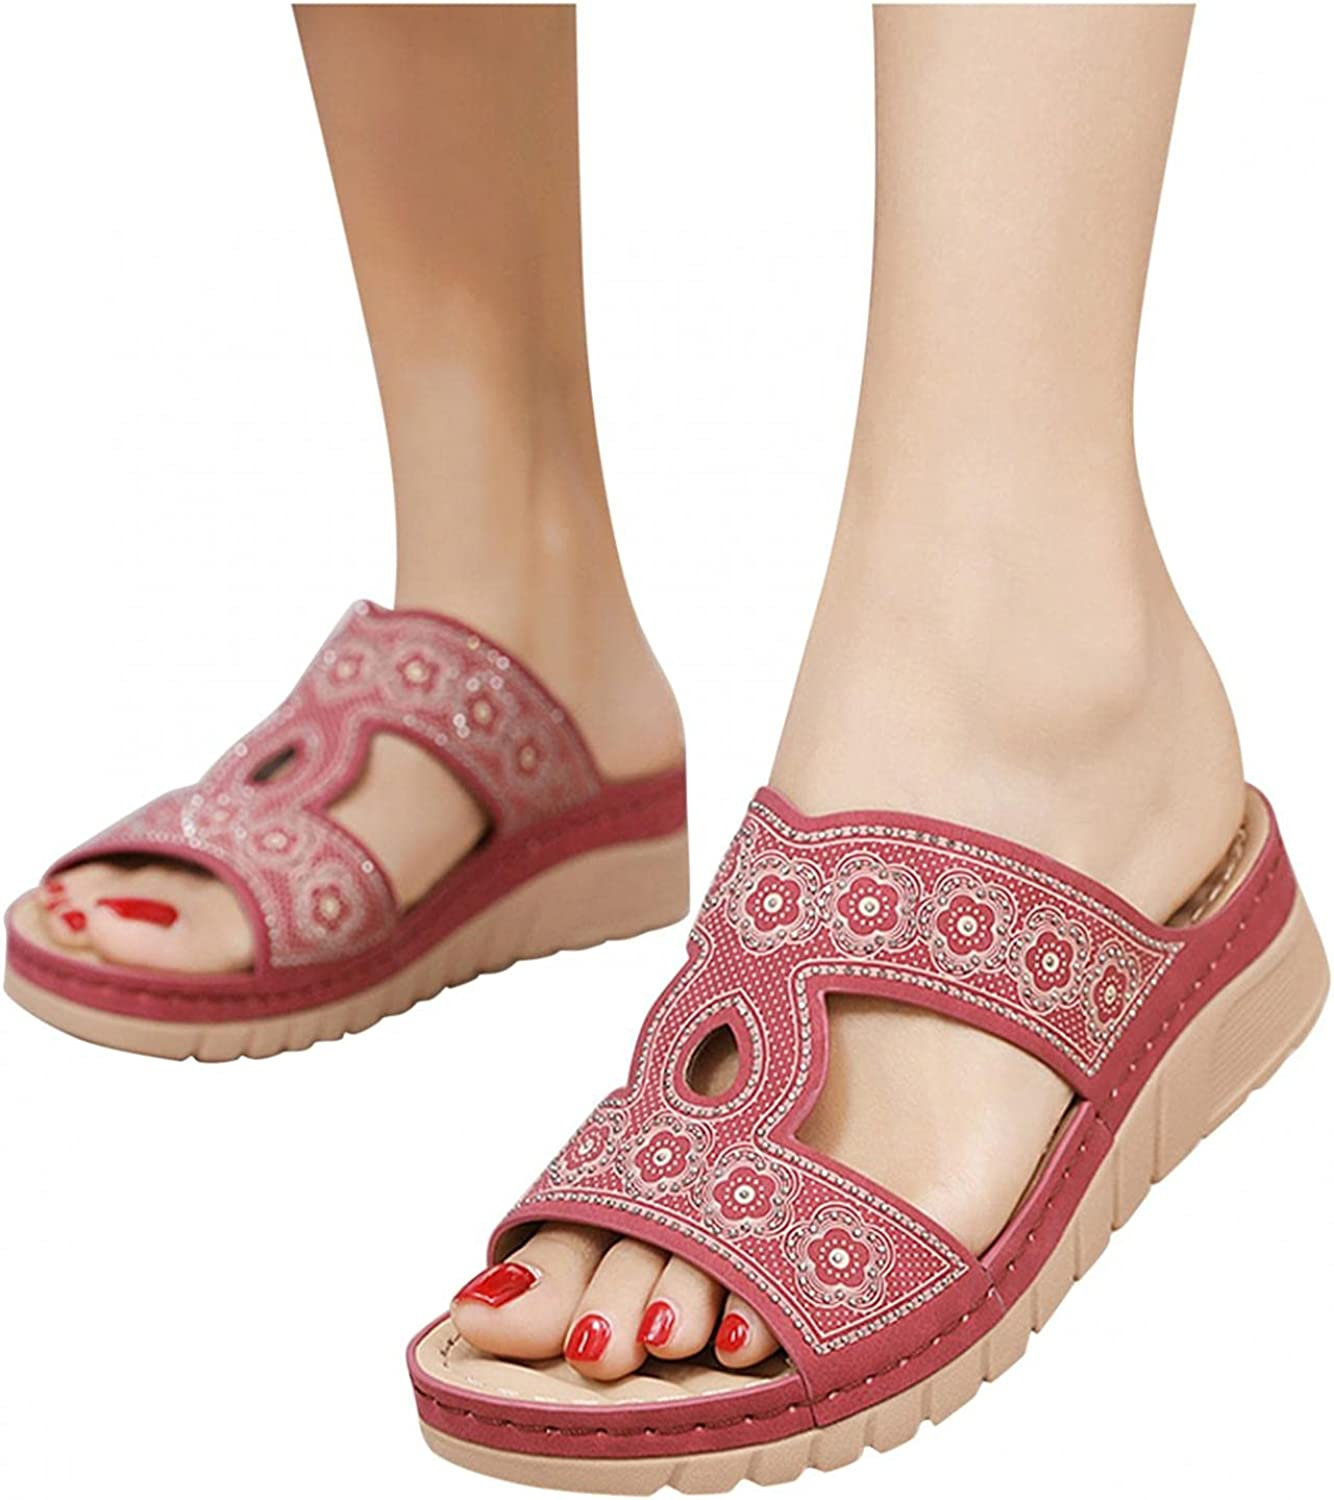 Hunauoo Slippers for Women Home Wedges Slip-On Open-Toe 5 ☆ popular Max 54% OFF